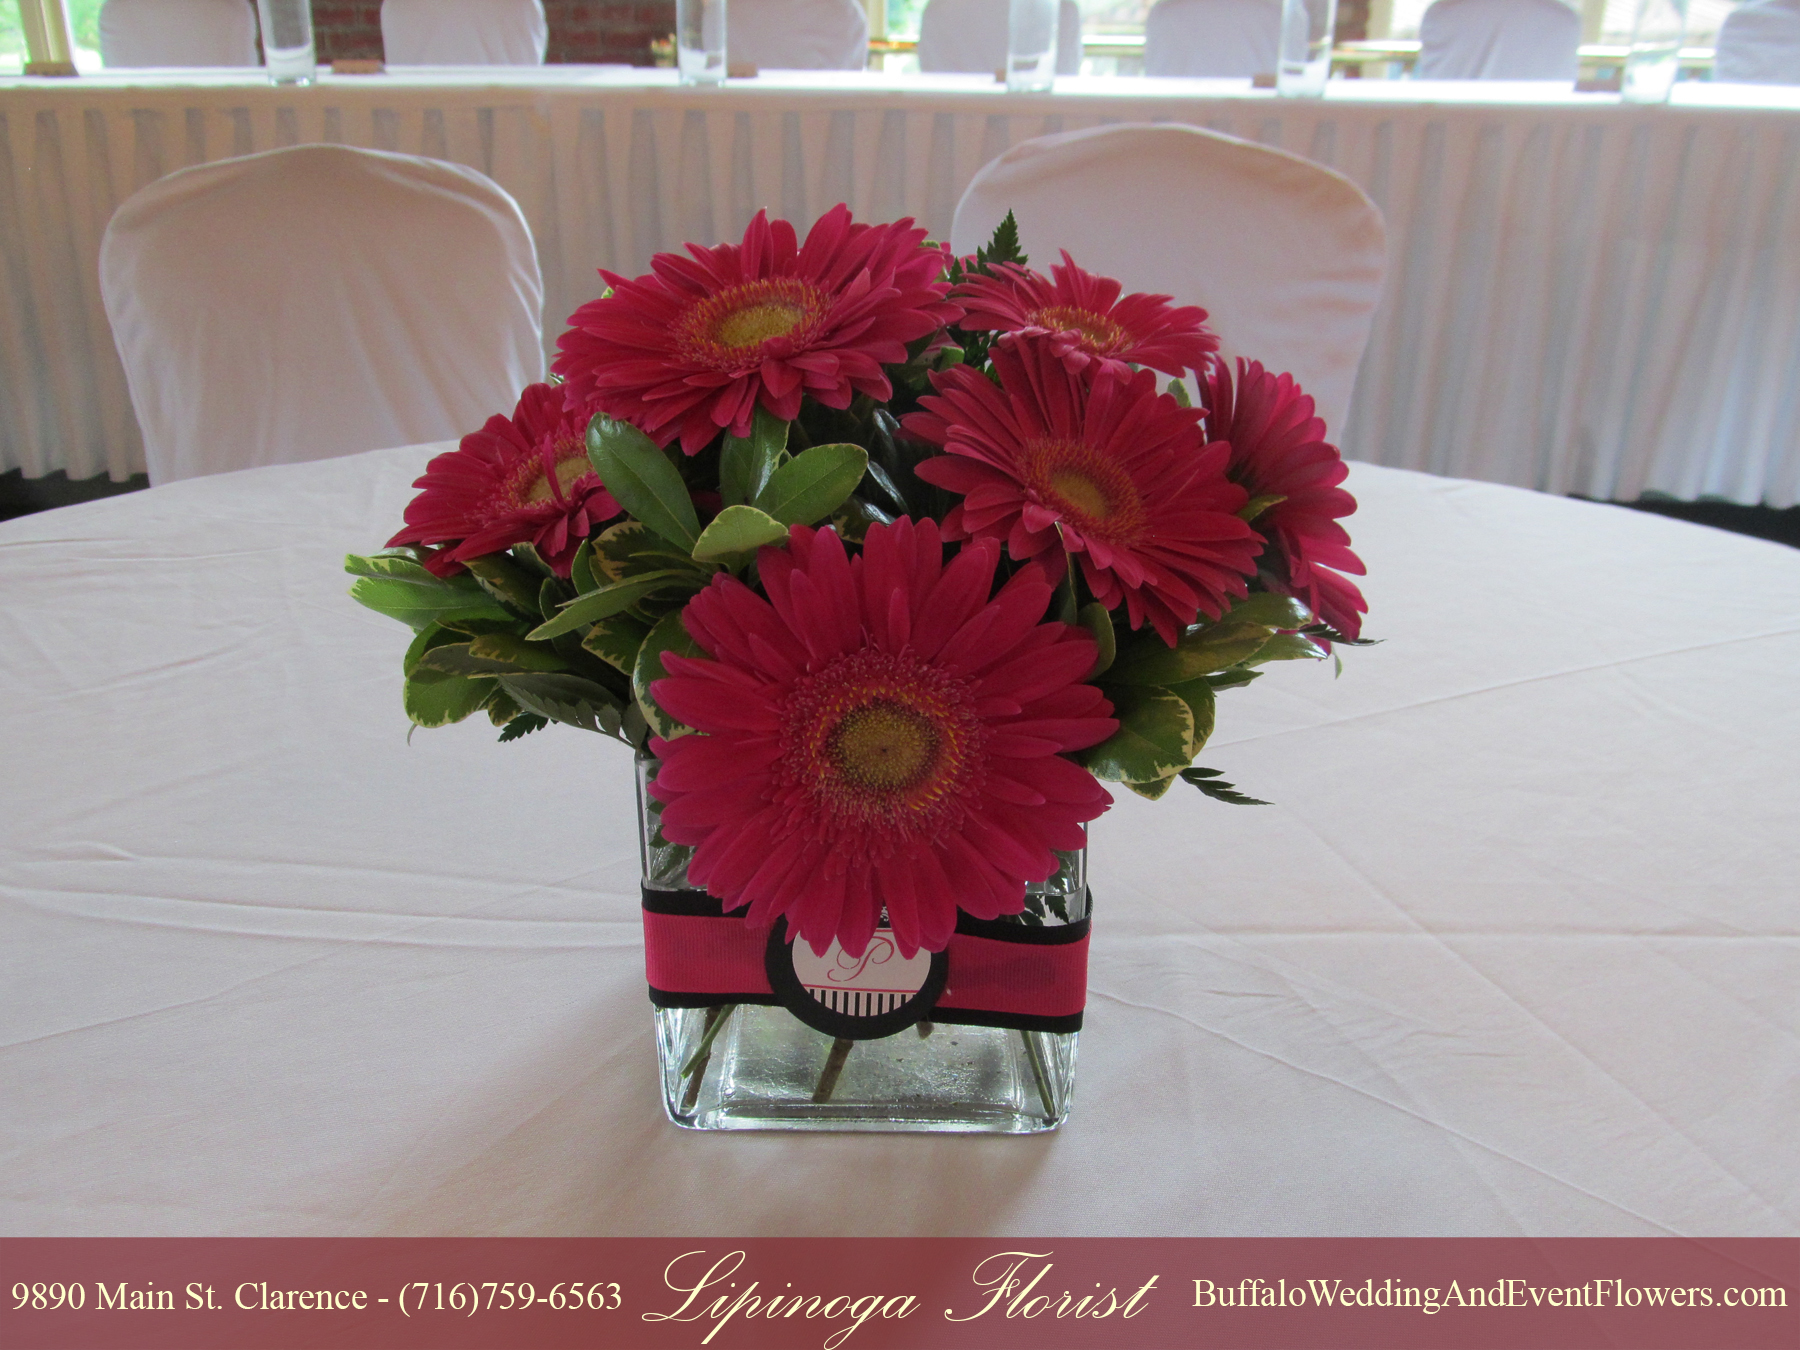 Hot Pink Wedding Flowers Buffalo Wedding Event Flowers By